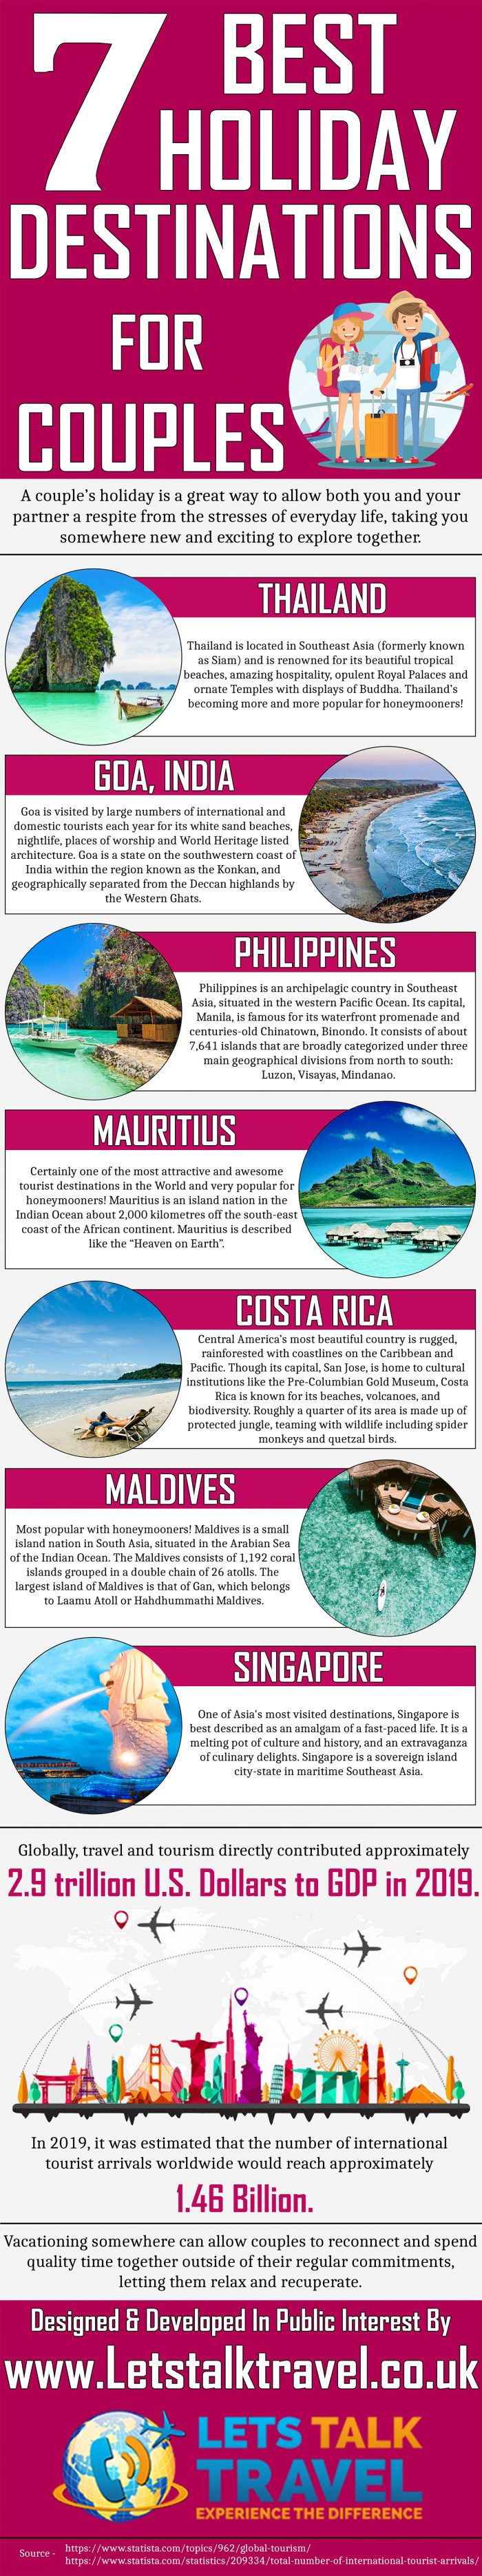 7 Best Holiday Destinations For Couples